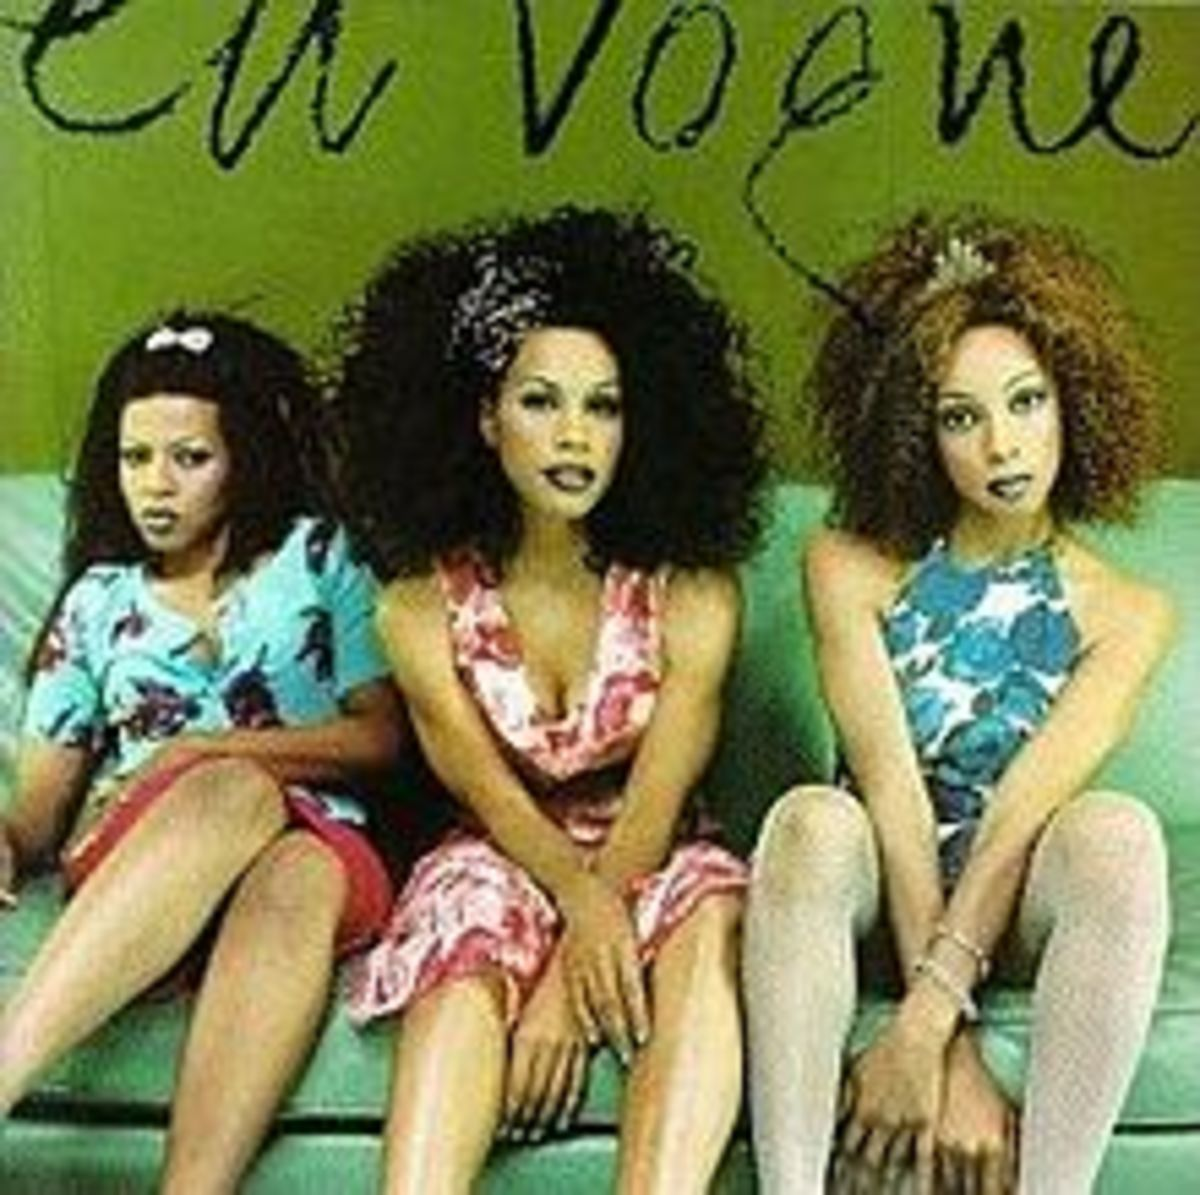 The success of Don't Let Go (Love) drove the label to get En Vogue back into the studio to record EV3, which features Don't Let Go (Love)as a single.